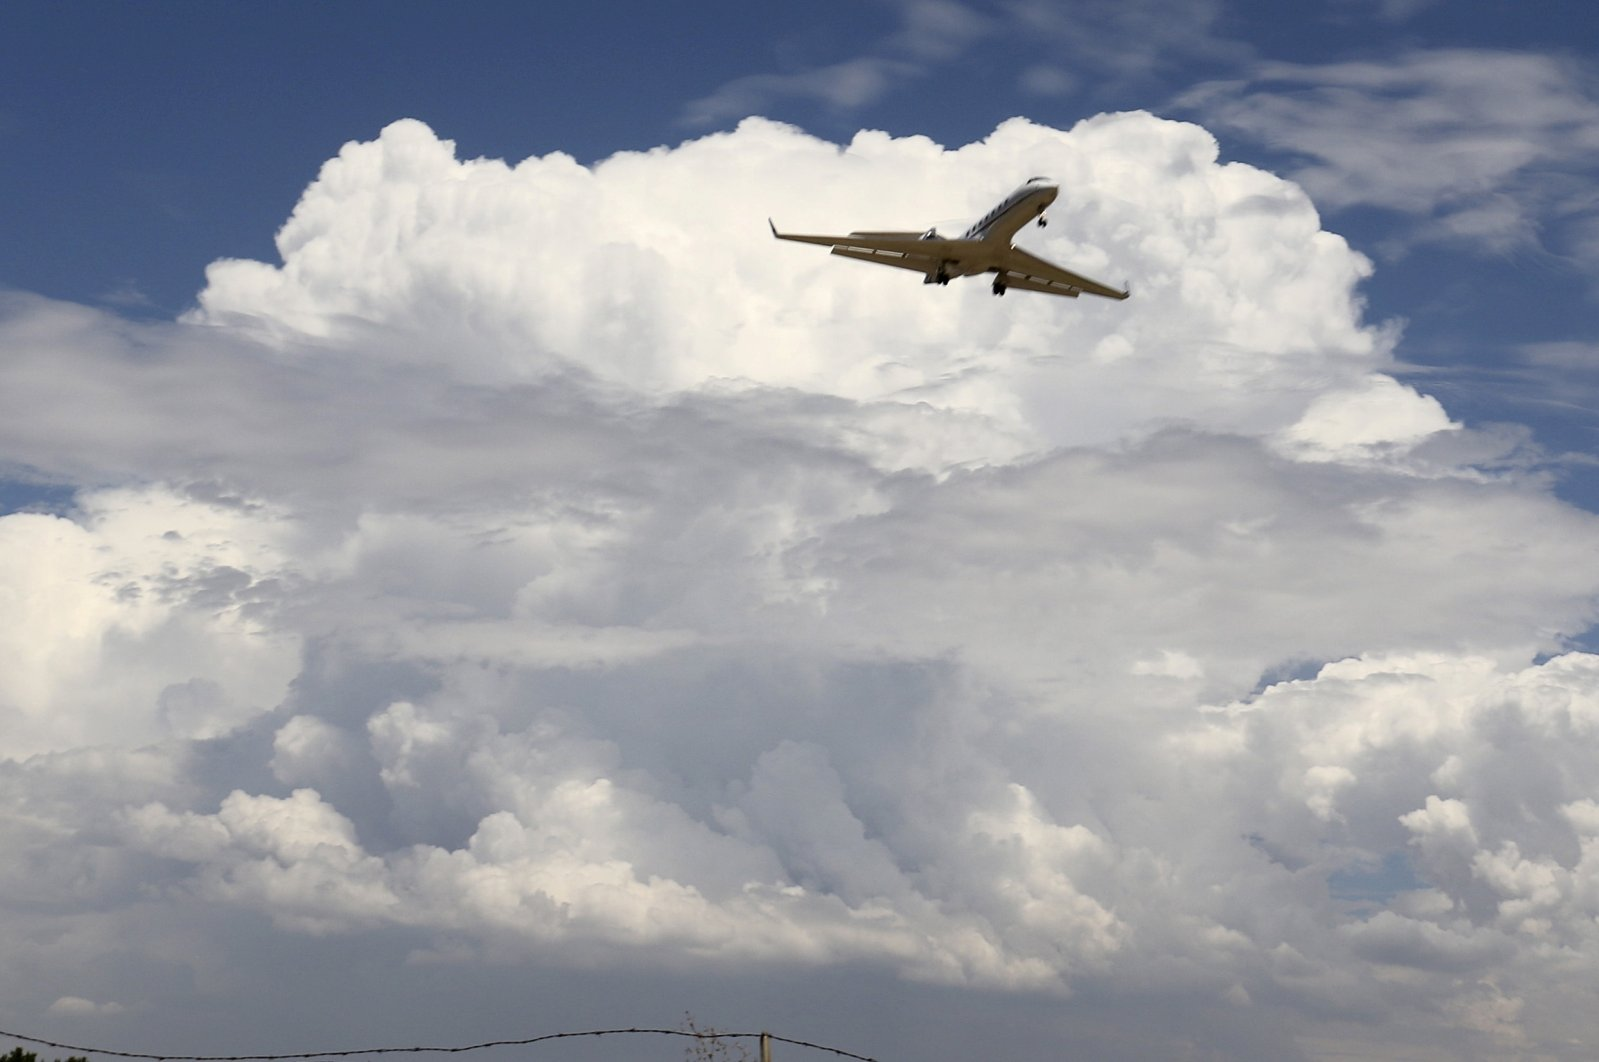 A private jet comes in for a landing at the Van Nuys airport in the high desert area of Los Angeles County, California, U.S., July 30, 2015. (Reuters Photo)